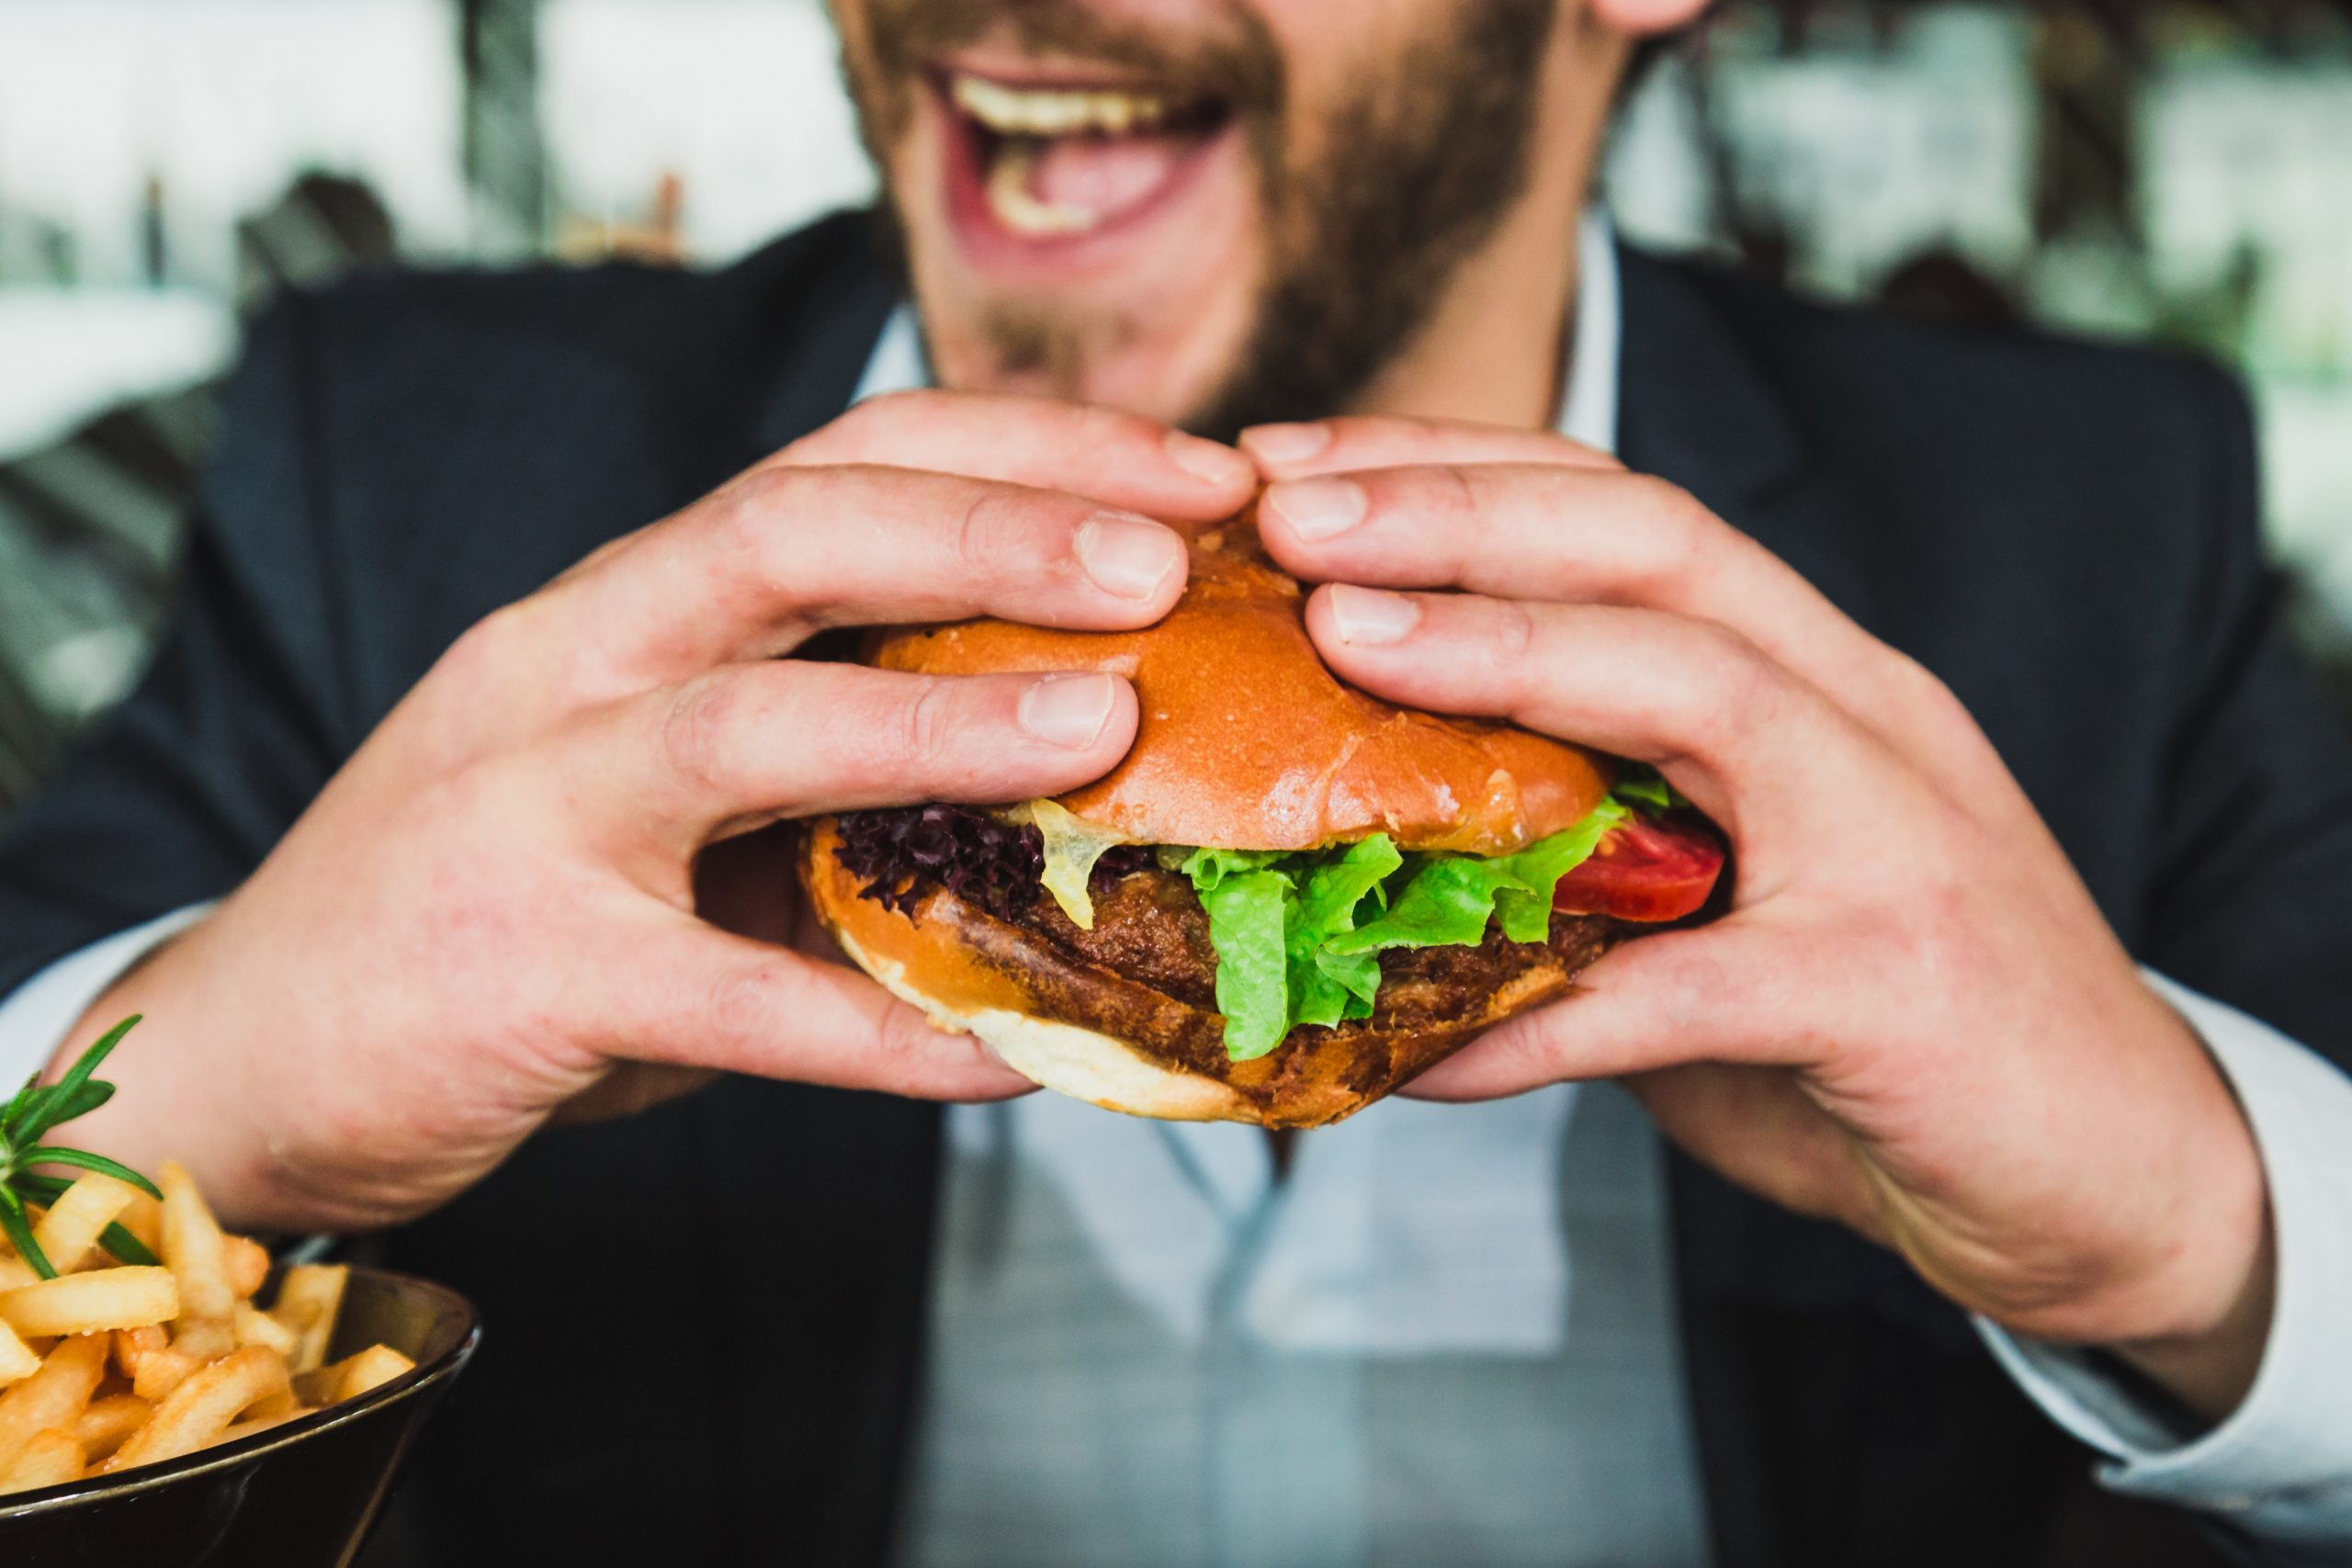 A man in a suit holding a burger and smiling after ordering from Sixdots instead of Bite Squad for restaurants.